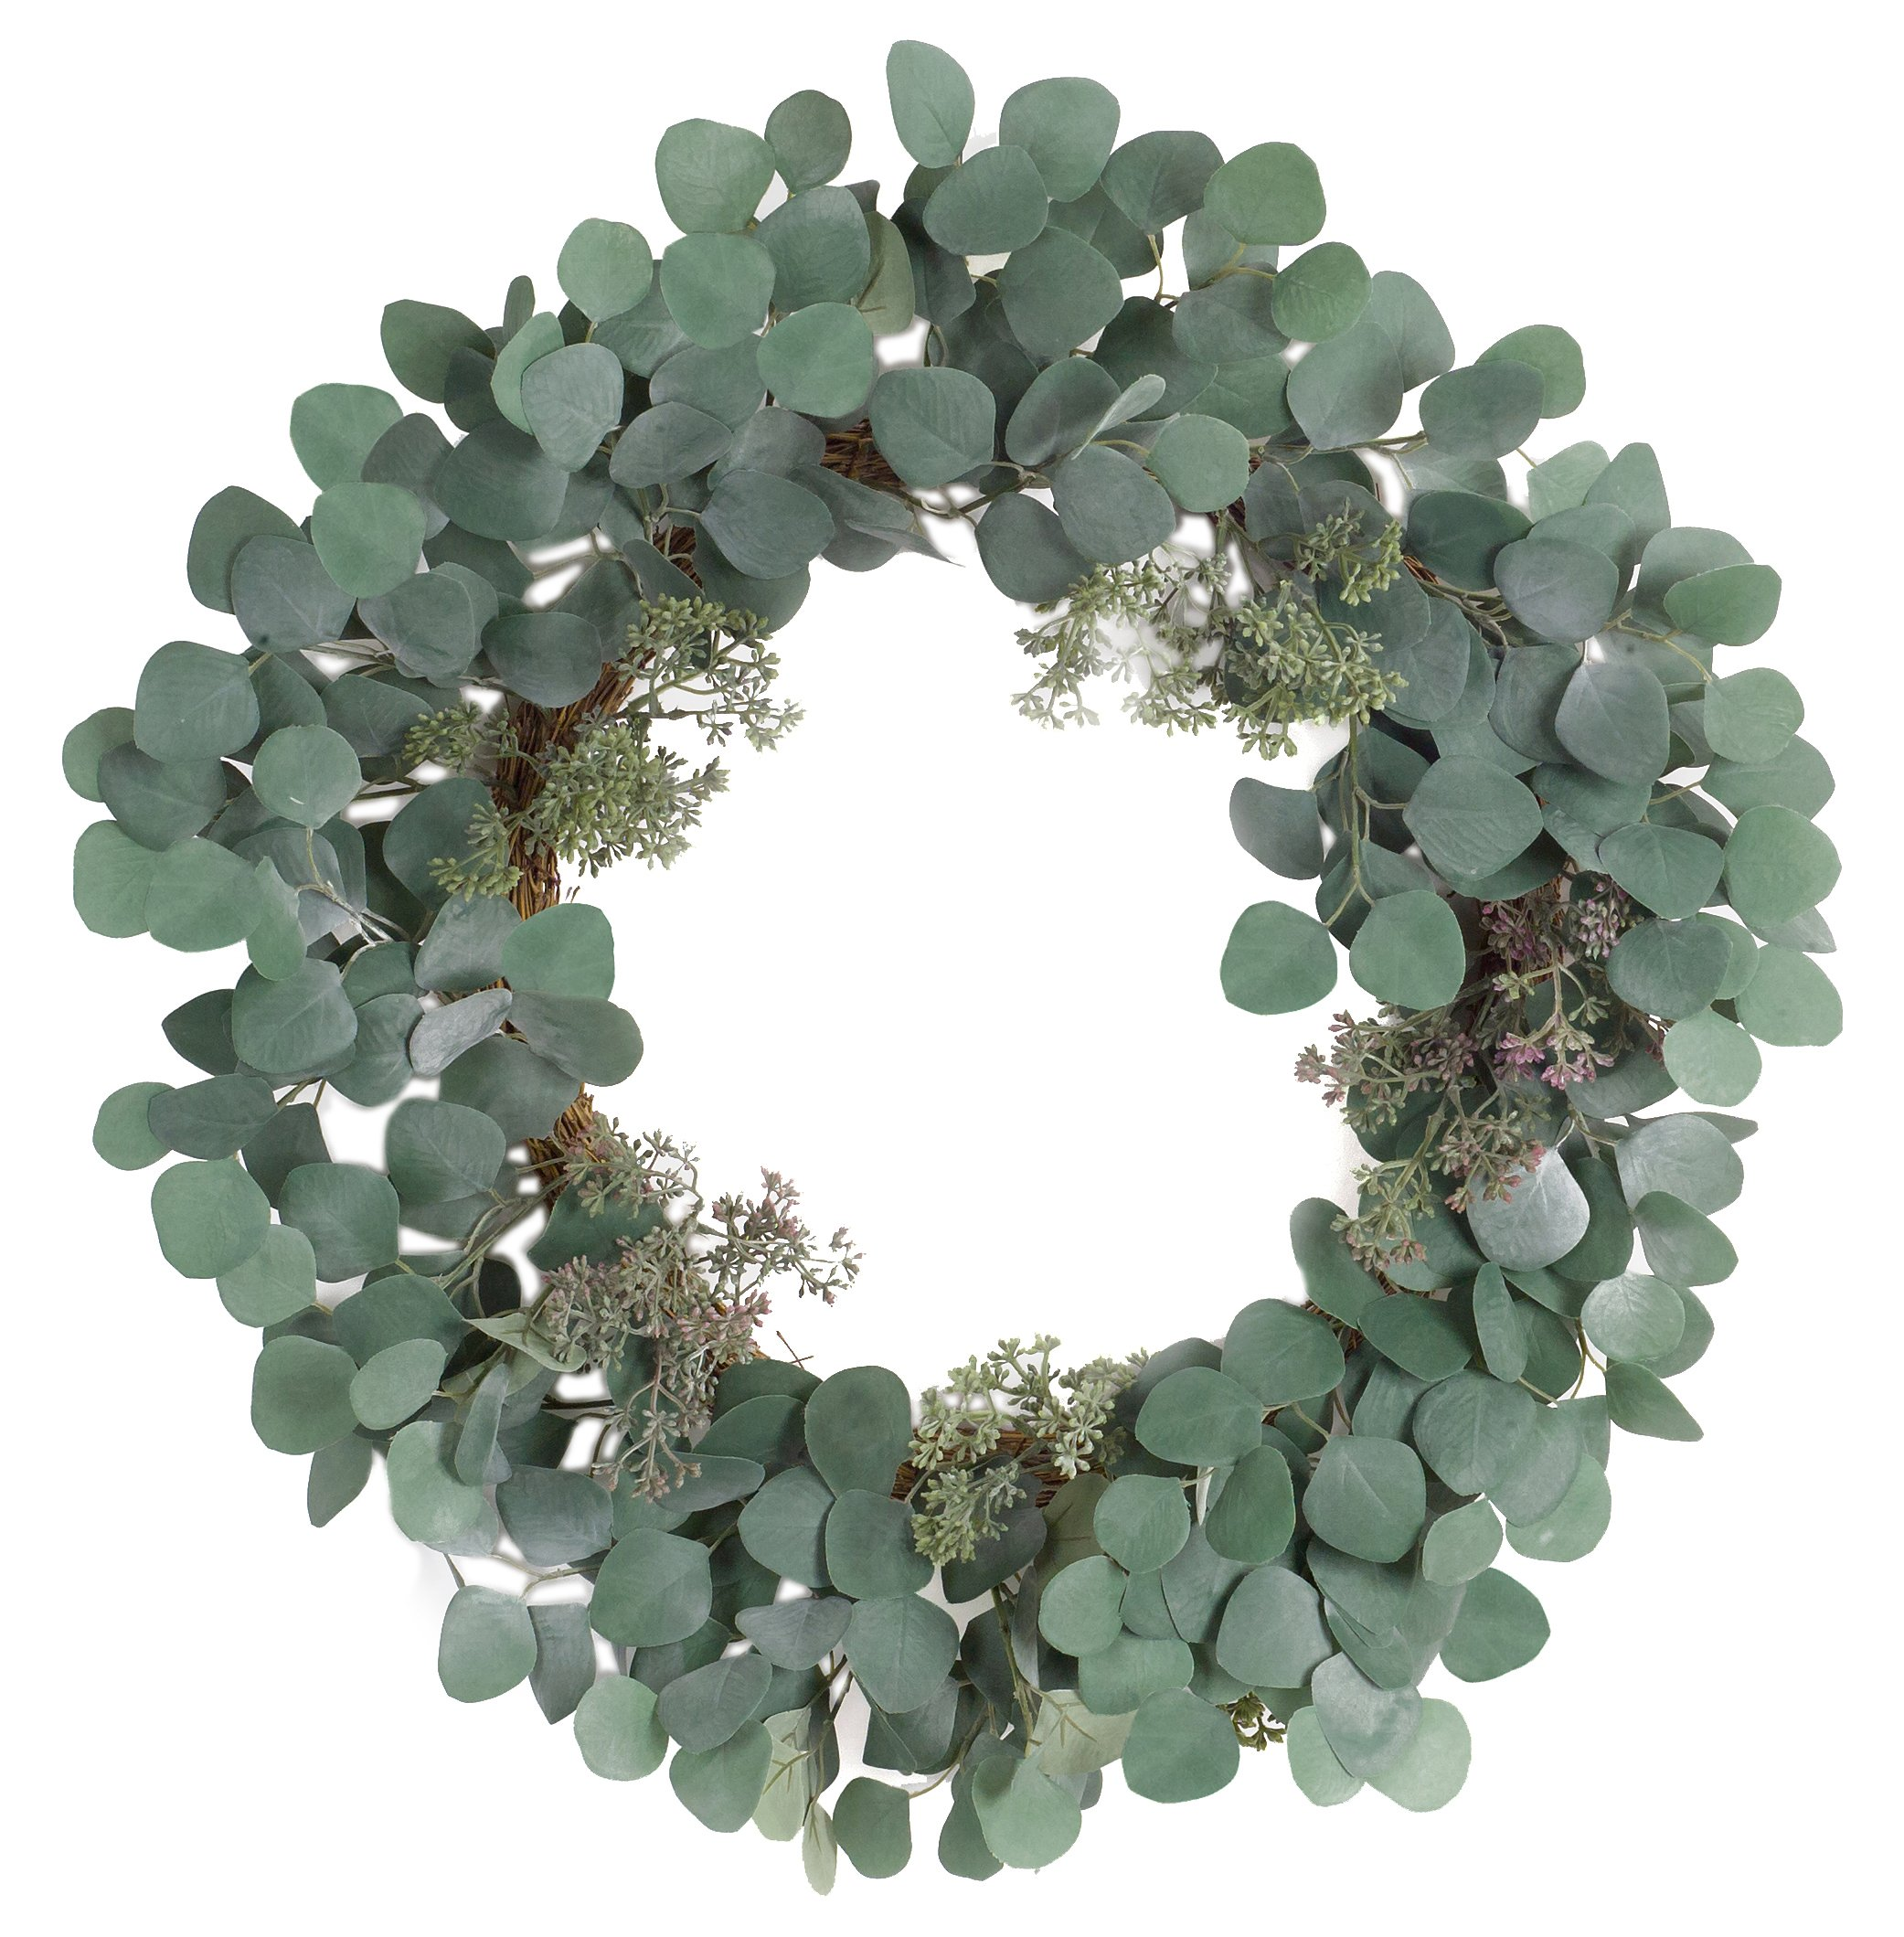 Melrose International 70230 Eucalyptus Wreath